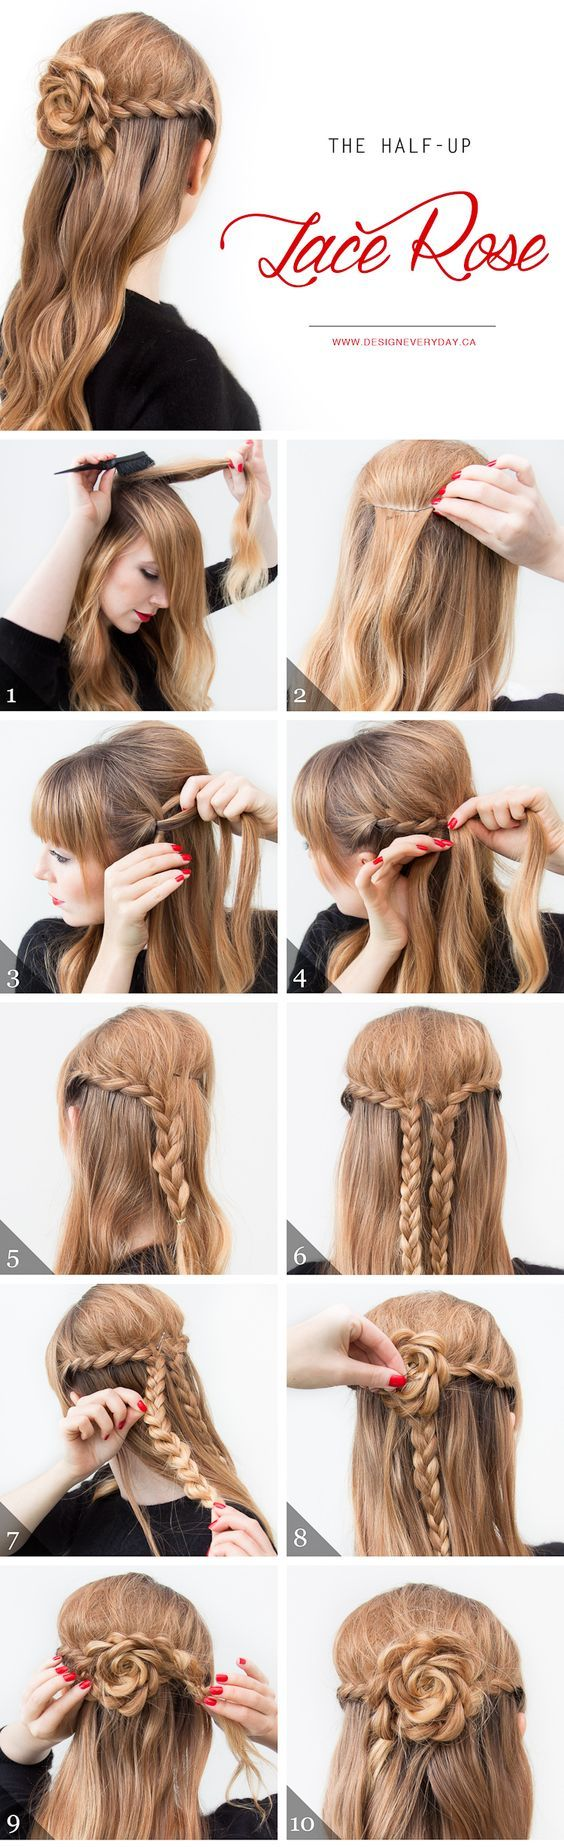 best nails done hair did images by salina anderson on pinterest